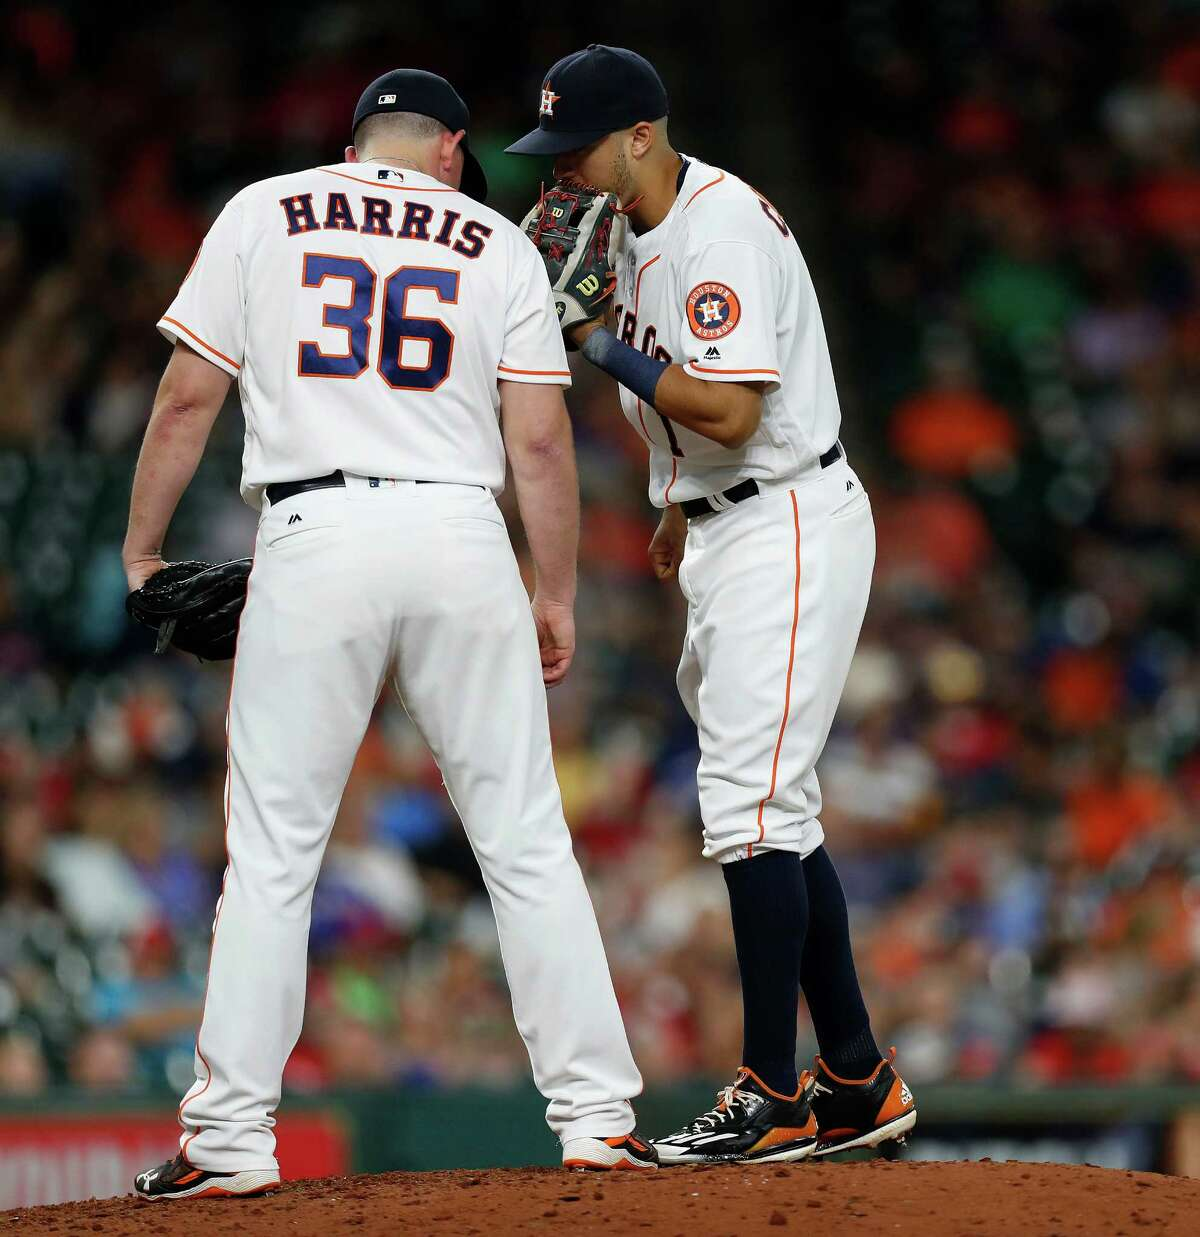 Houston Astros shortstop Carlos Correa (1) talks with relief pitcher Will Harris (36) during the eighth inning of an MLB game at Minute Maid Park, Wednesday, Sept. 14, 2016 in Houston.